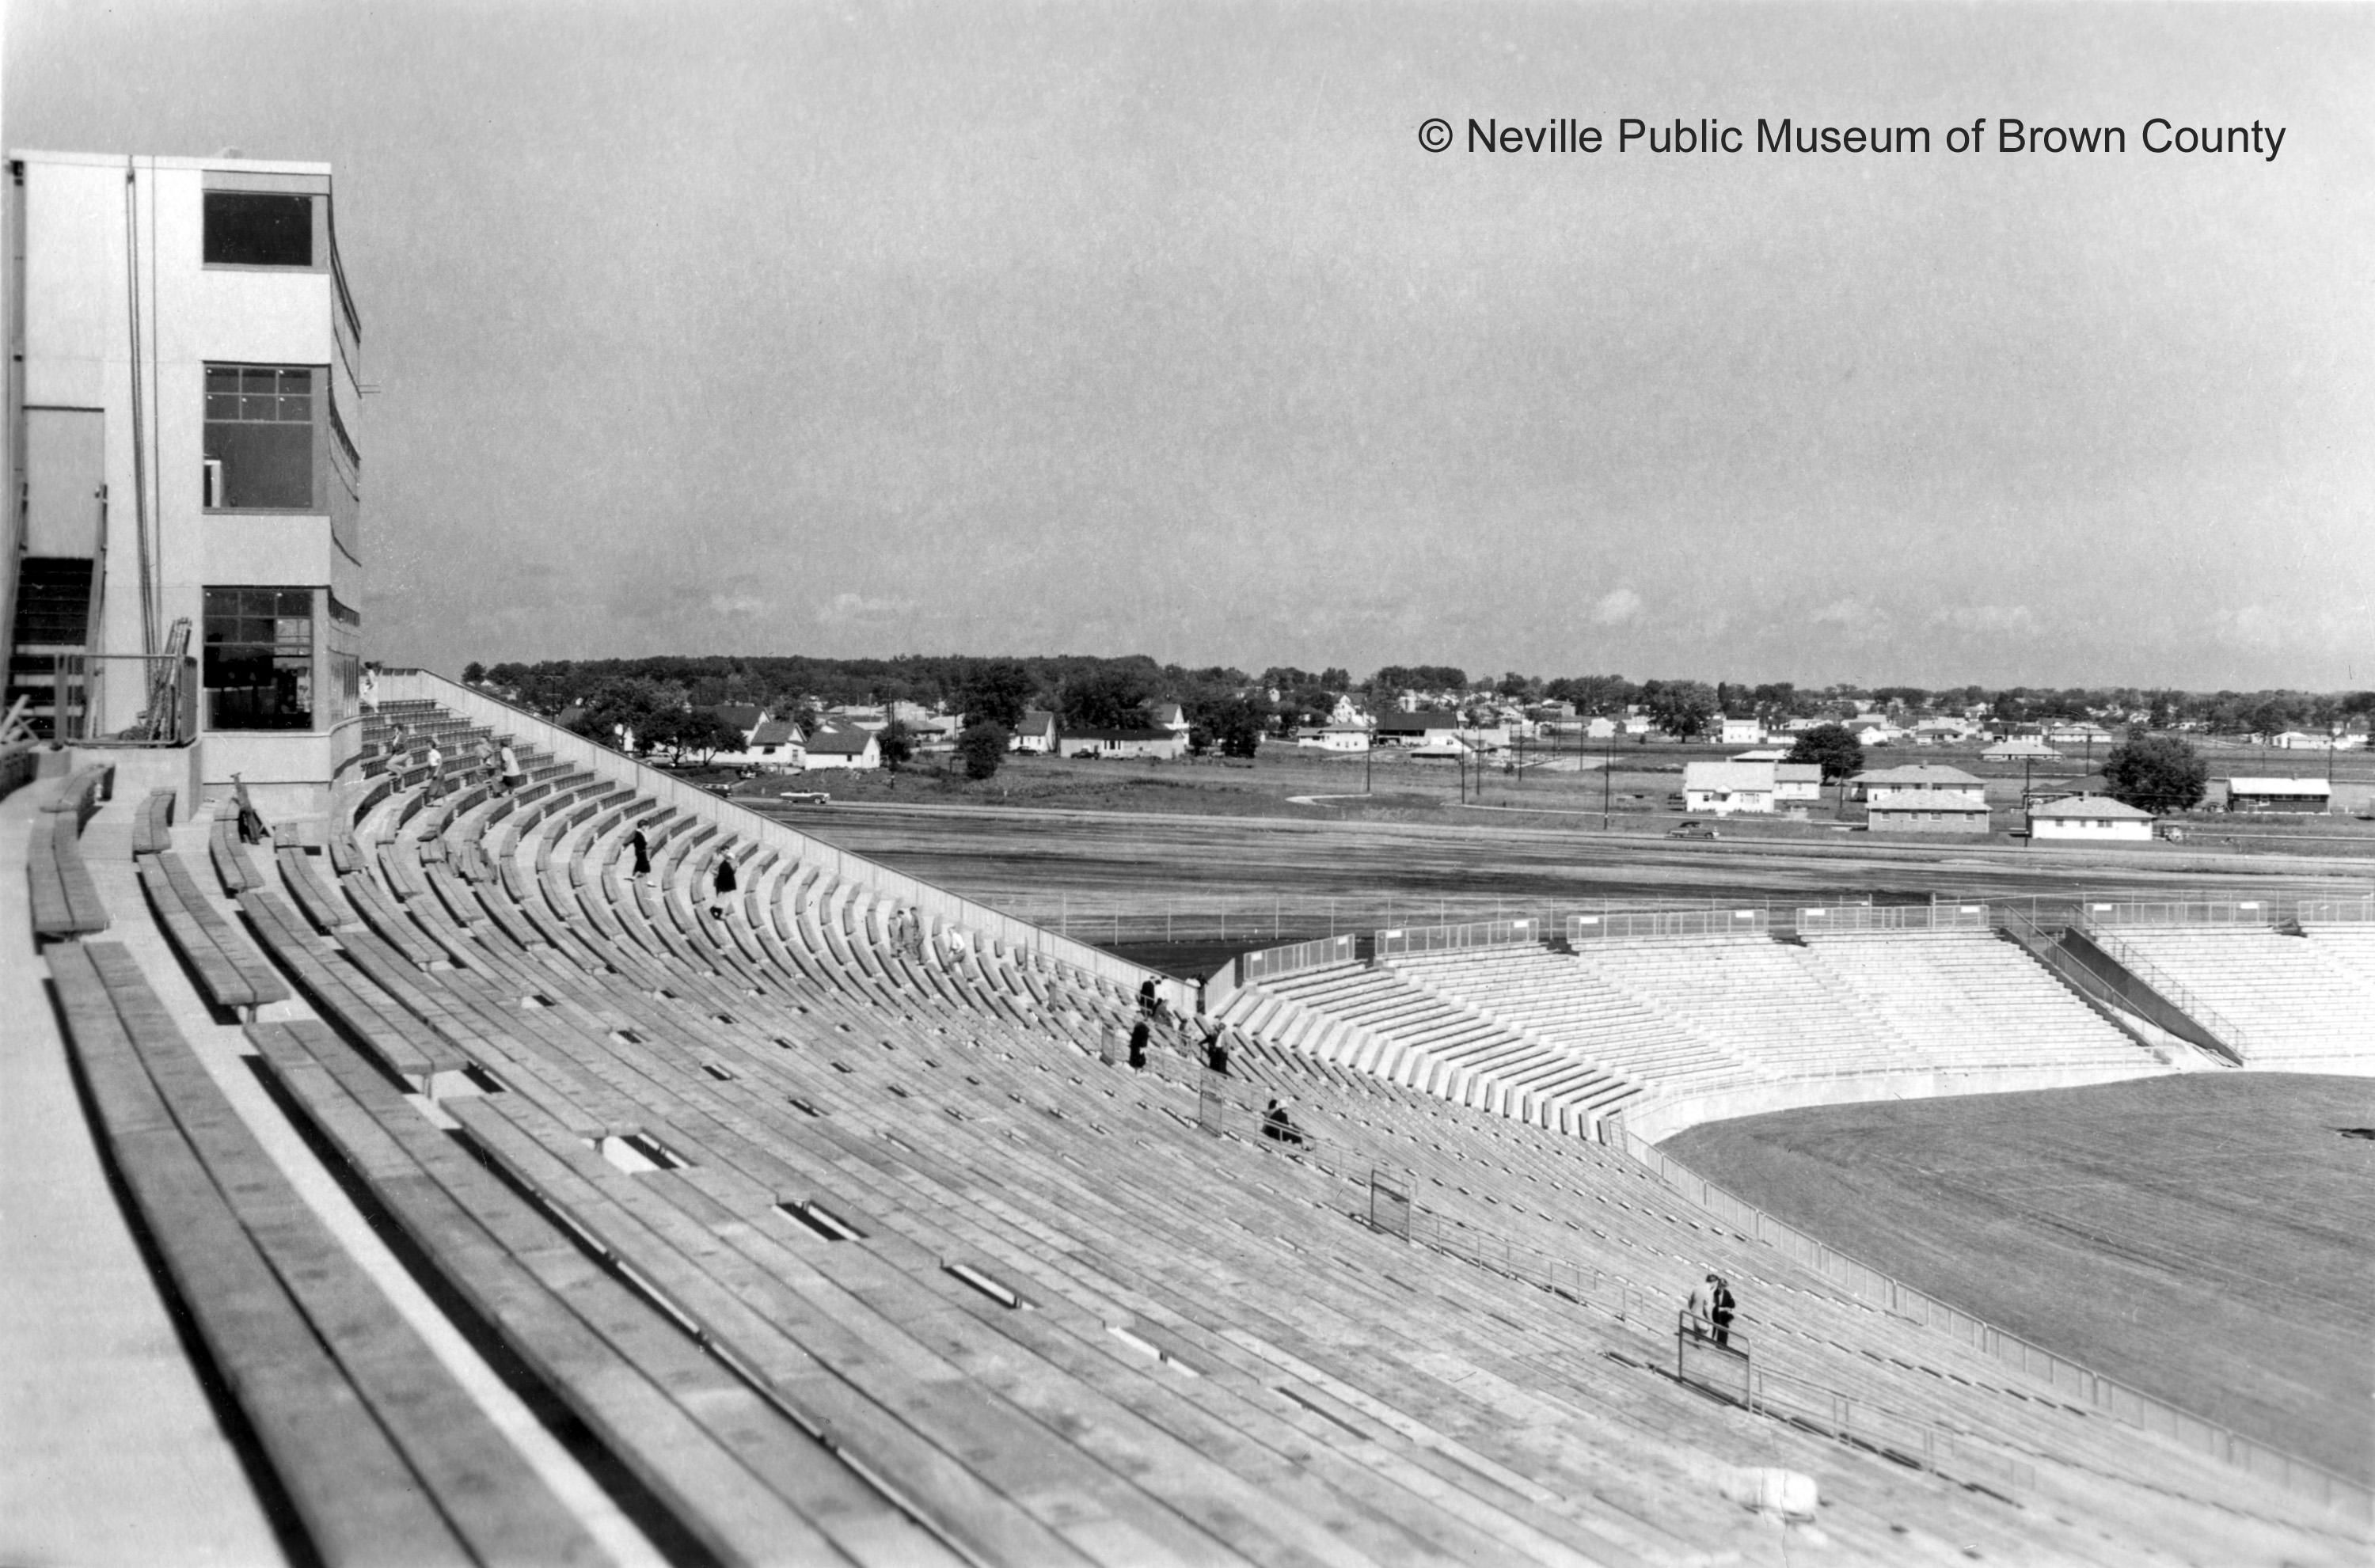 New City Stadium construction nearly complete in 1957, and view of surrounding community at the time. (Courtesy: Neville Public Museum of Brown County)